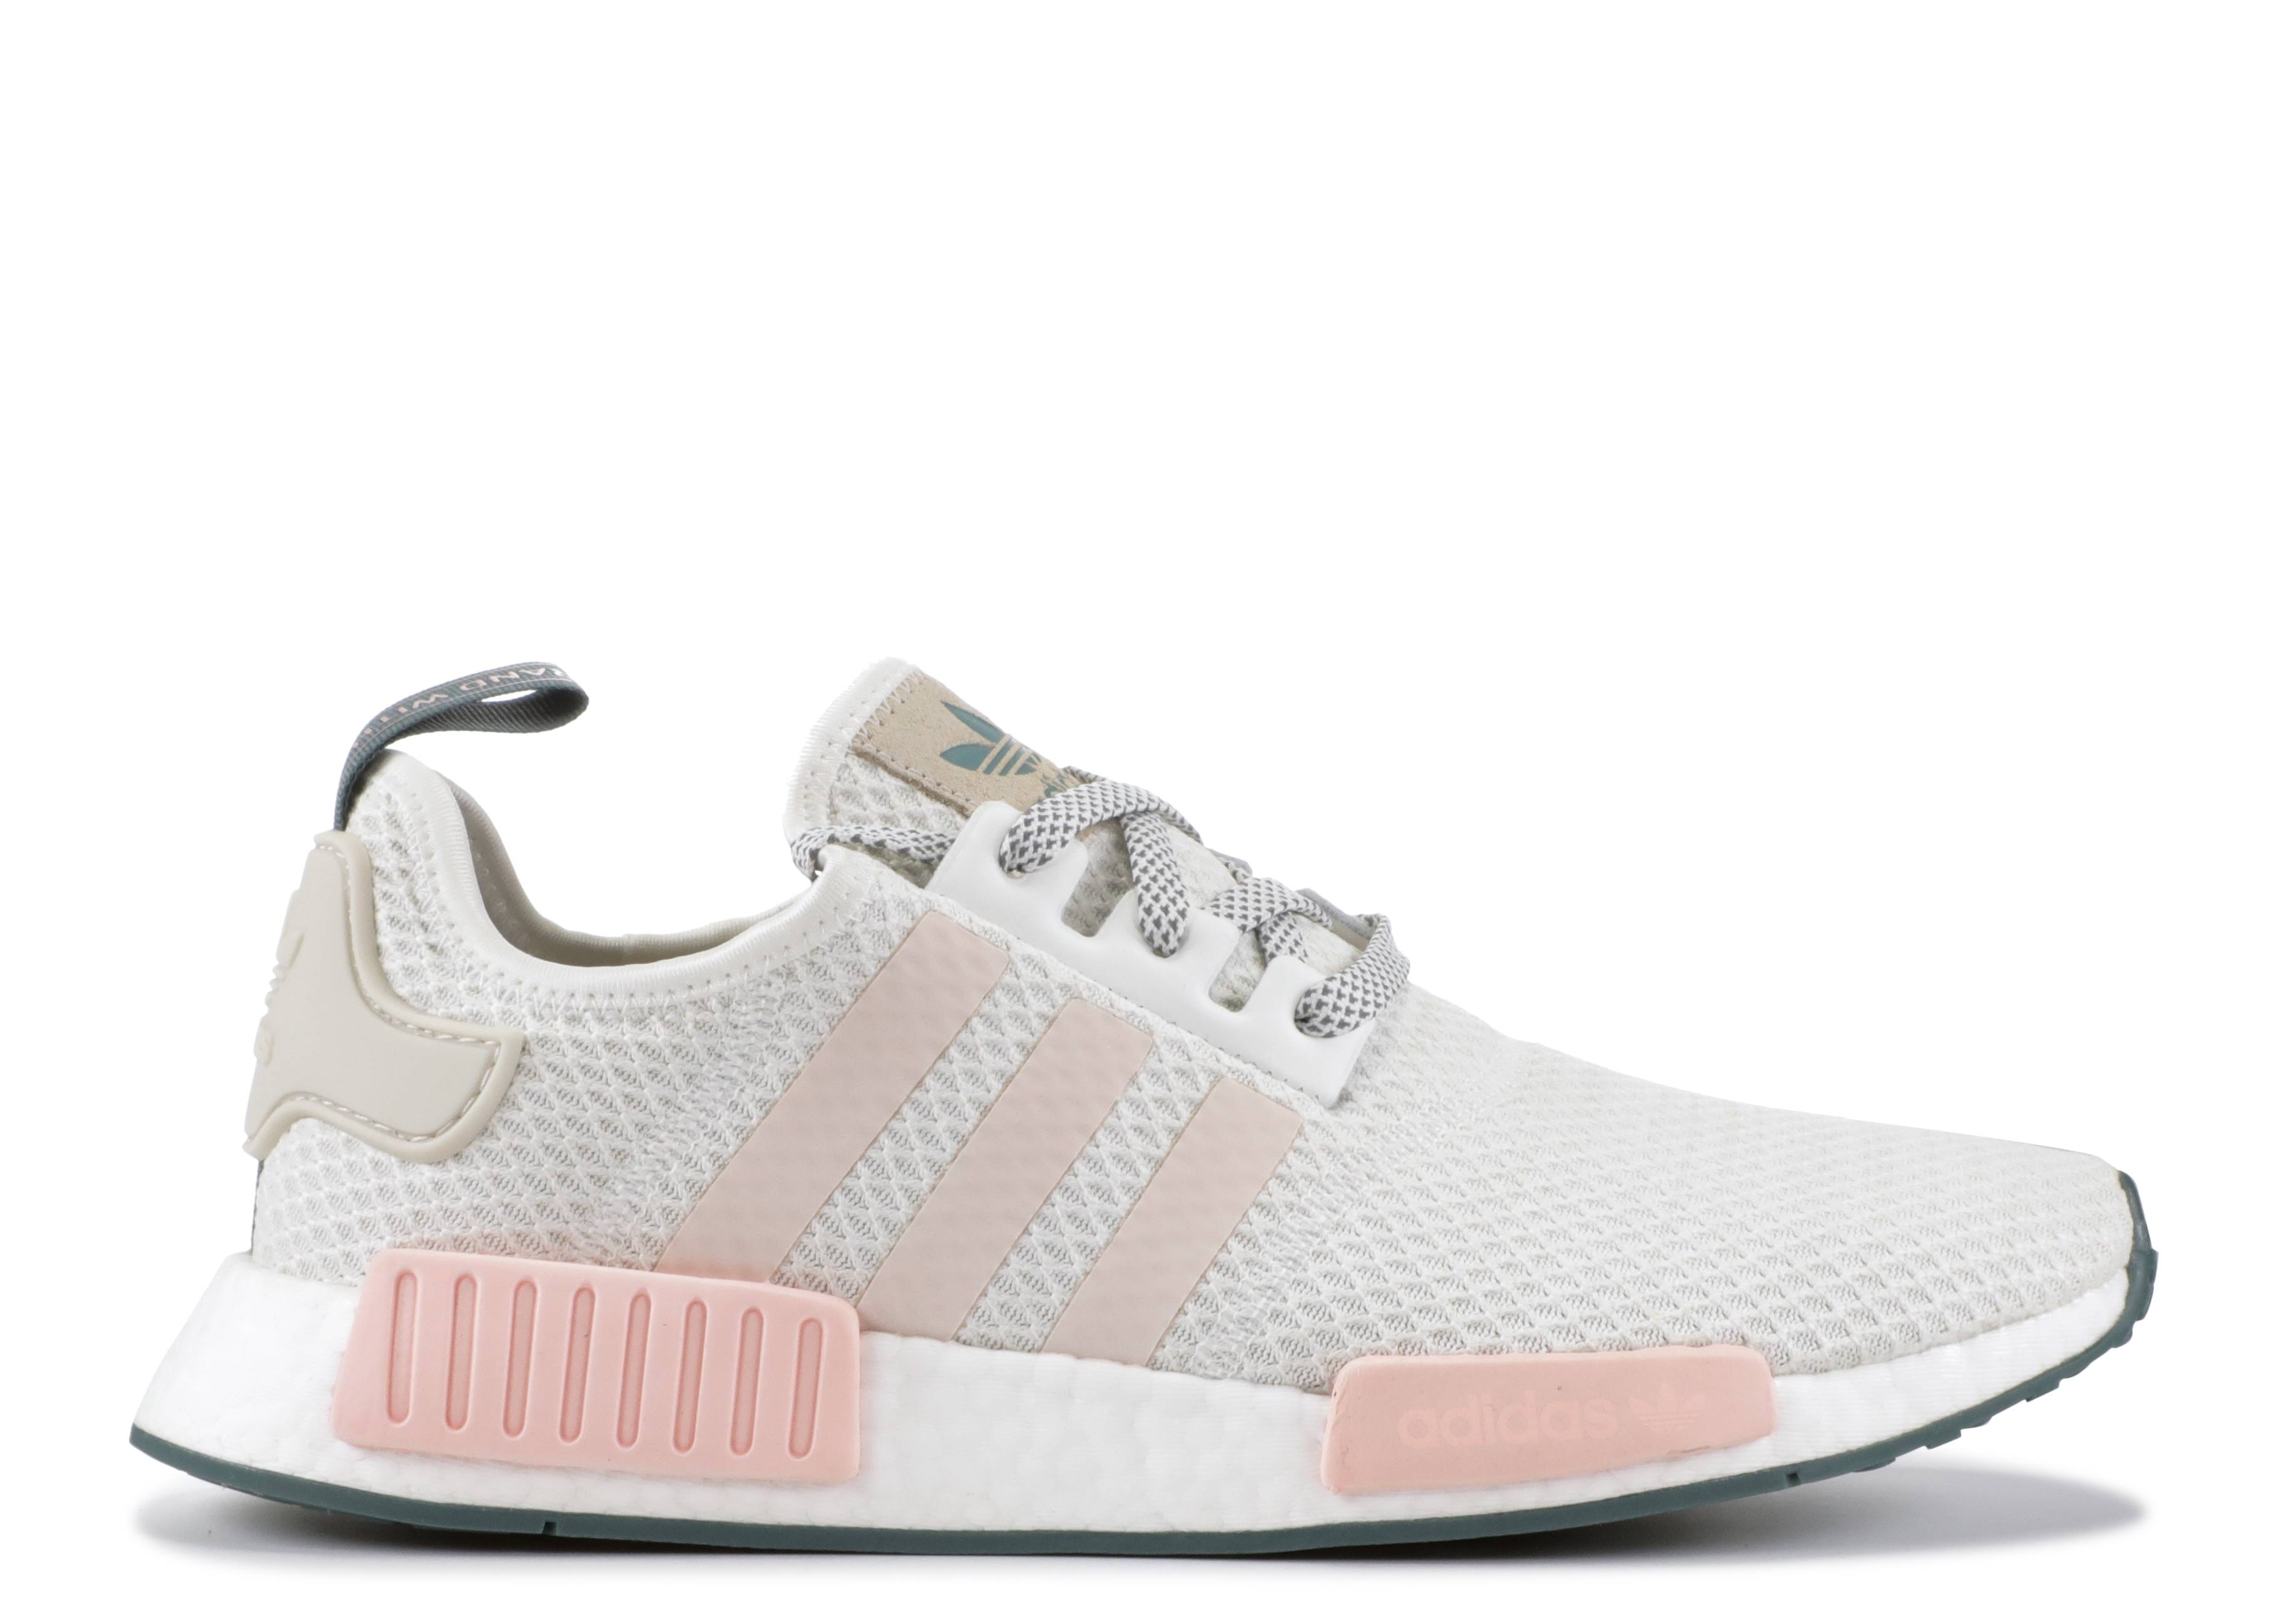 7637657c8 NMD R1 W - Adidas - d97232 - cloud white talc icey pink